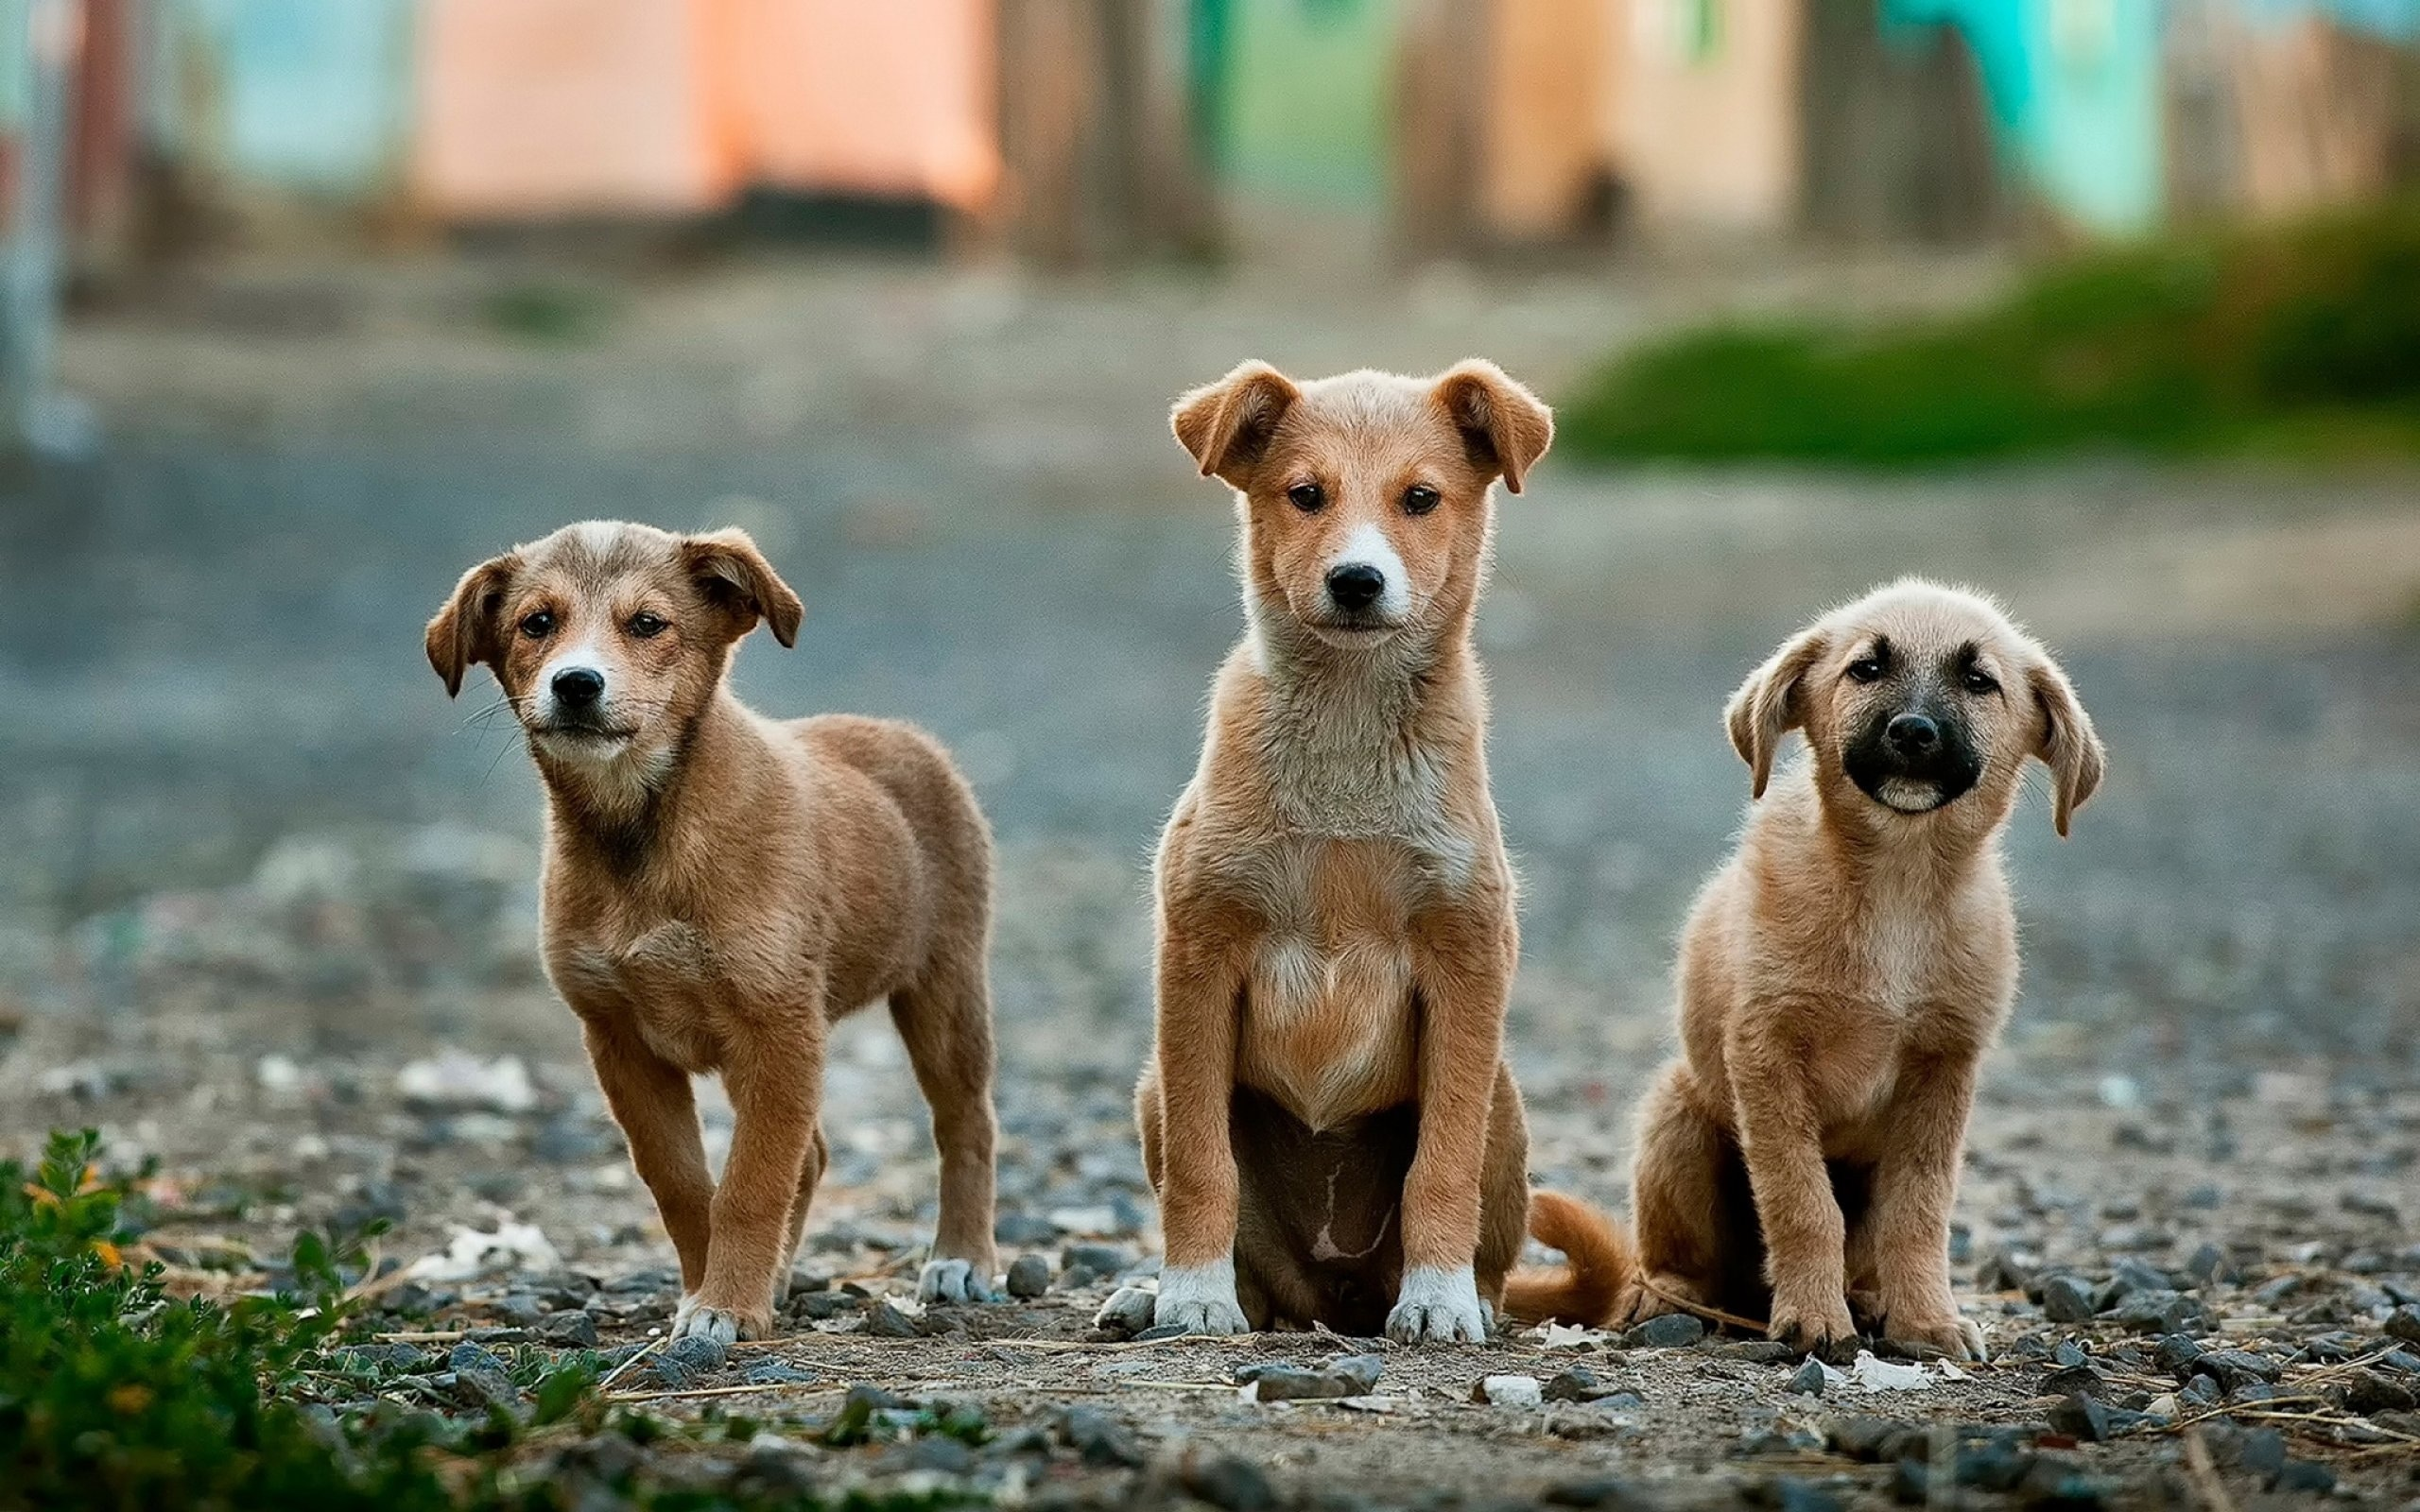 dna testing for pets: genomics goes to the dogs